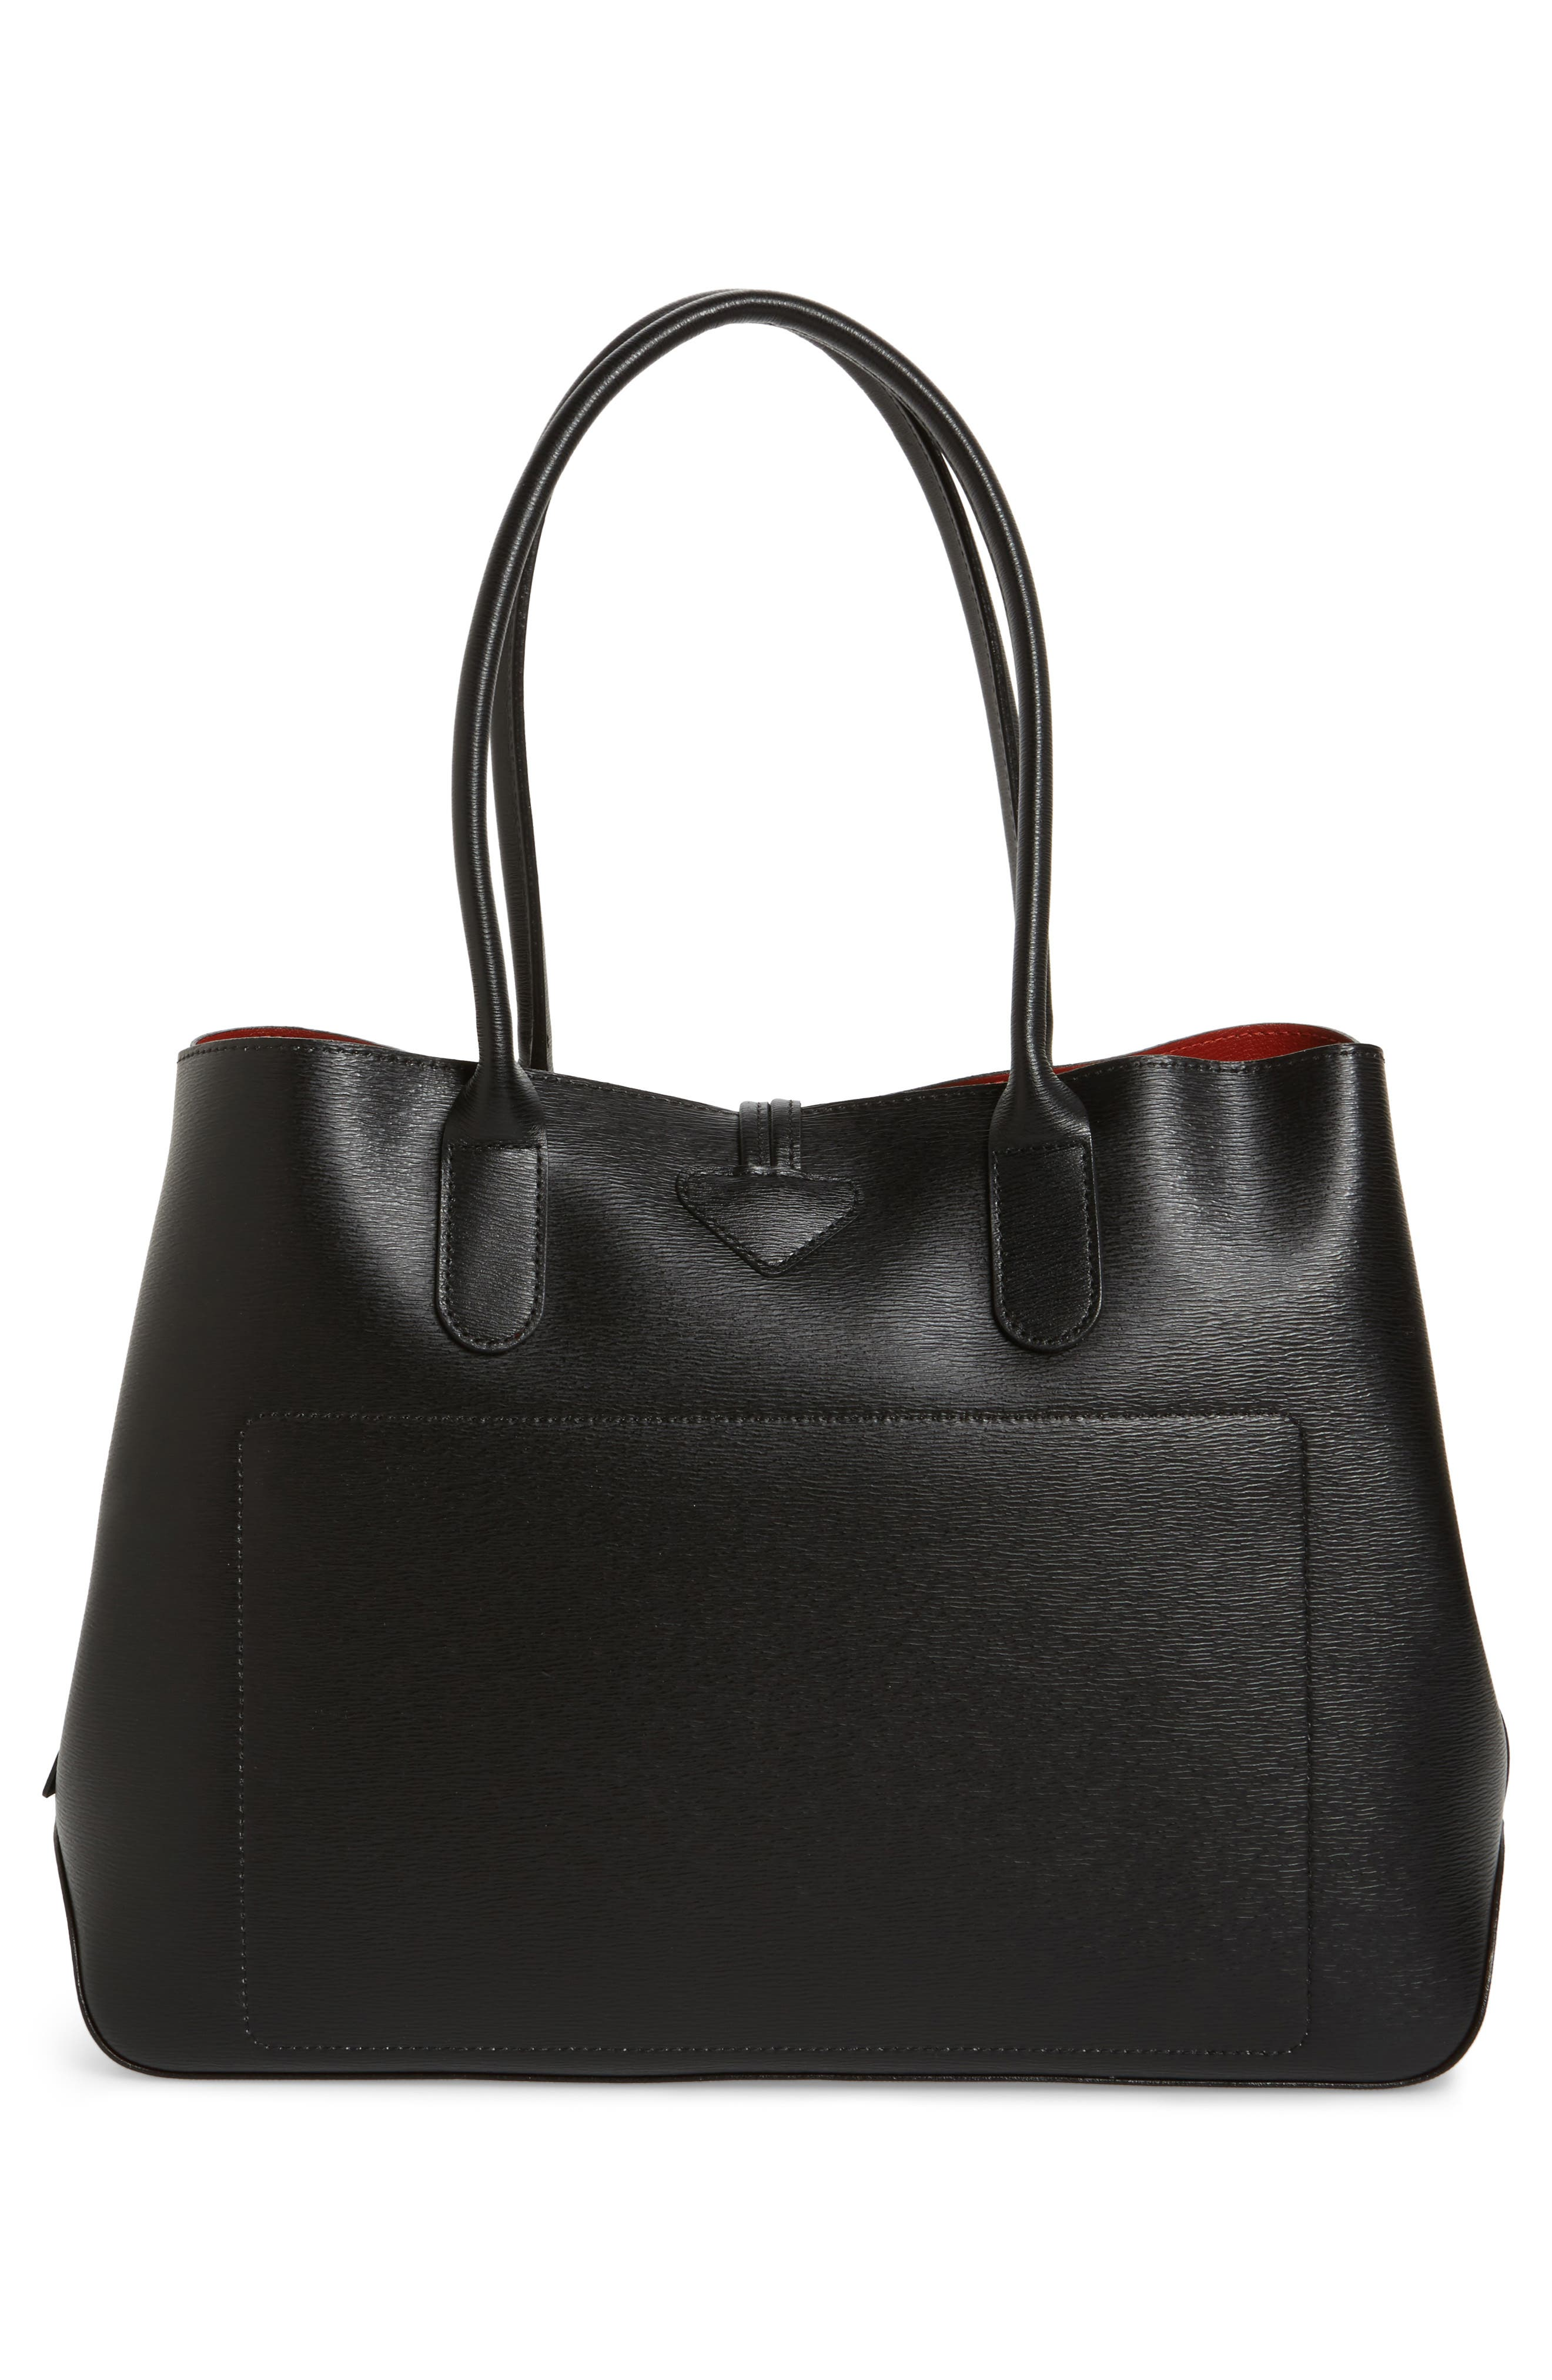 c968d00f5e Tote Bags for Women: Leather, Coated Canvas, & Neoprene | Nordstrom